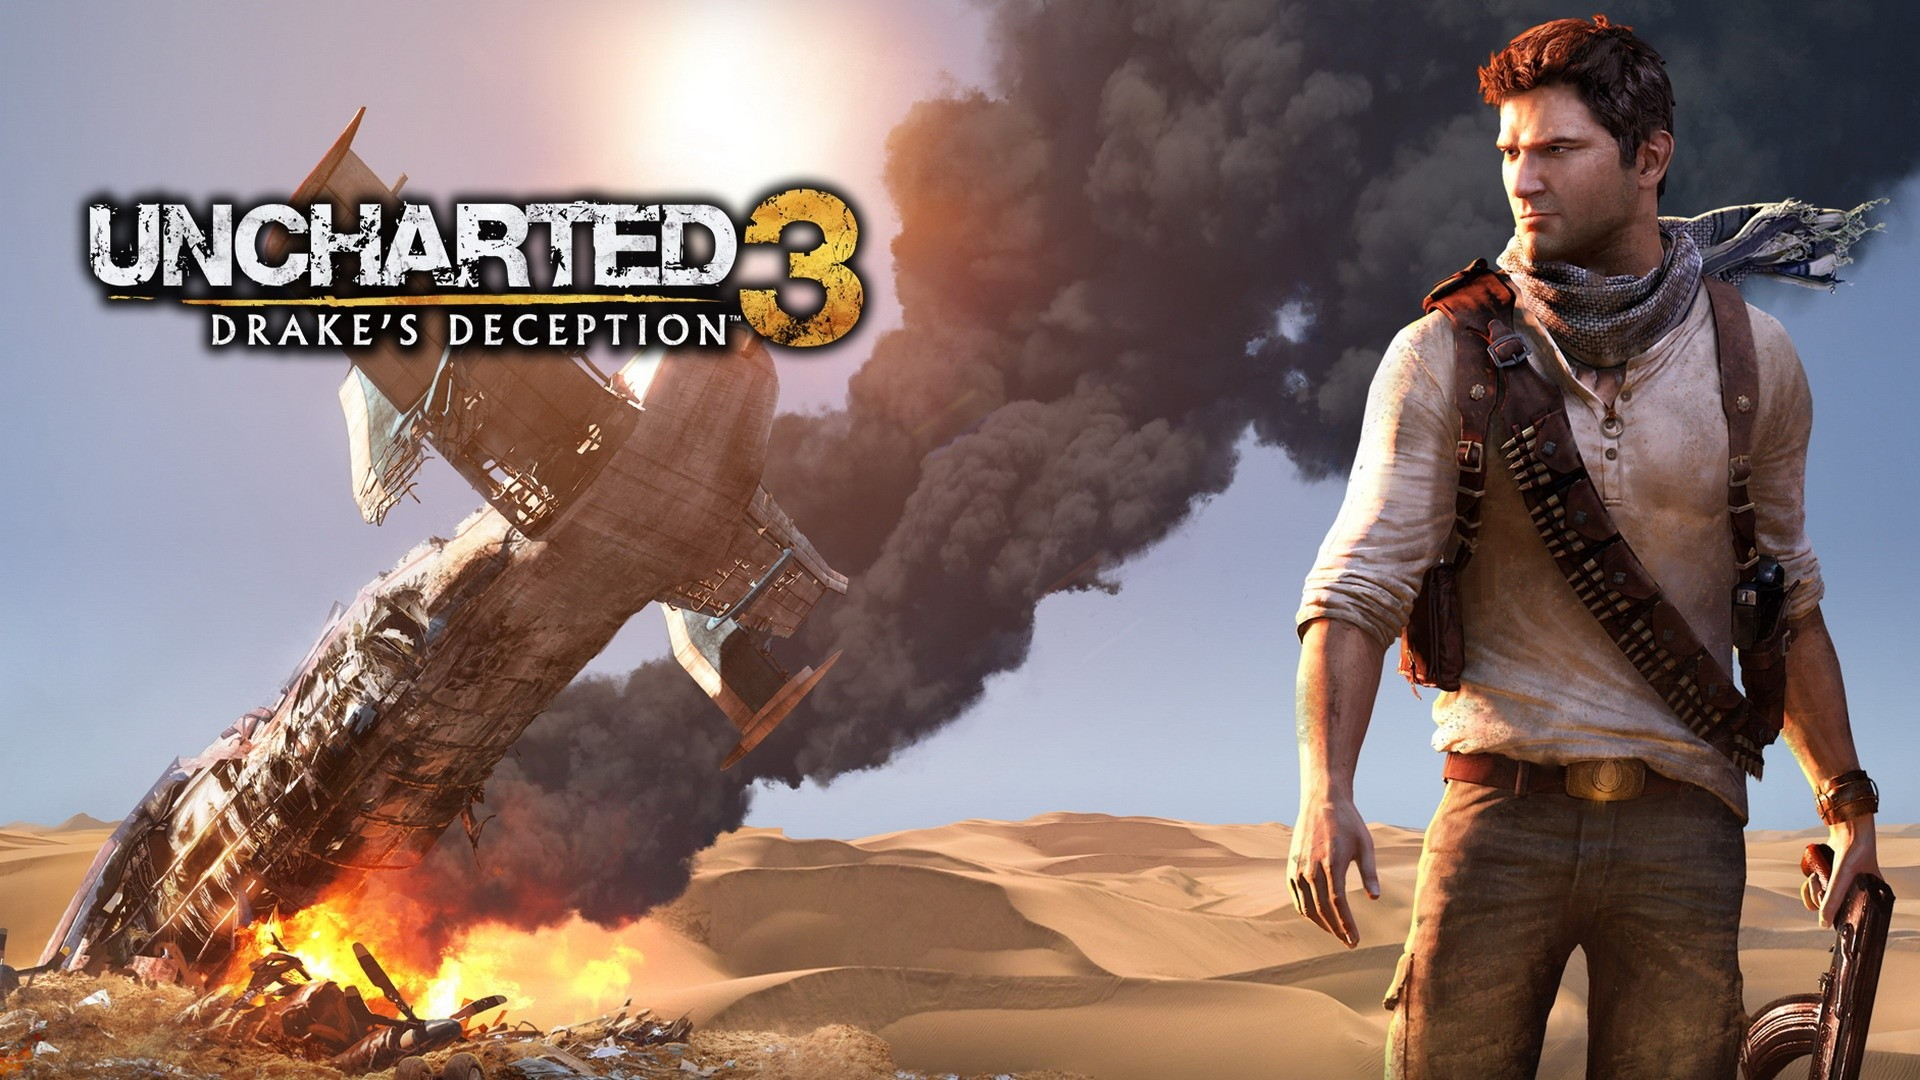 1920x1080 HD Wallpaper | Background ID:274590.  Video Game Uncharted 3:  Drake's Deception